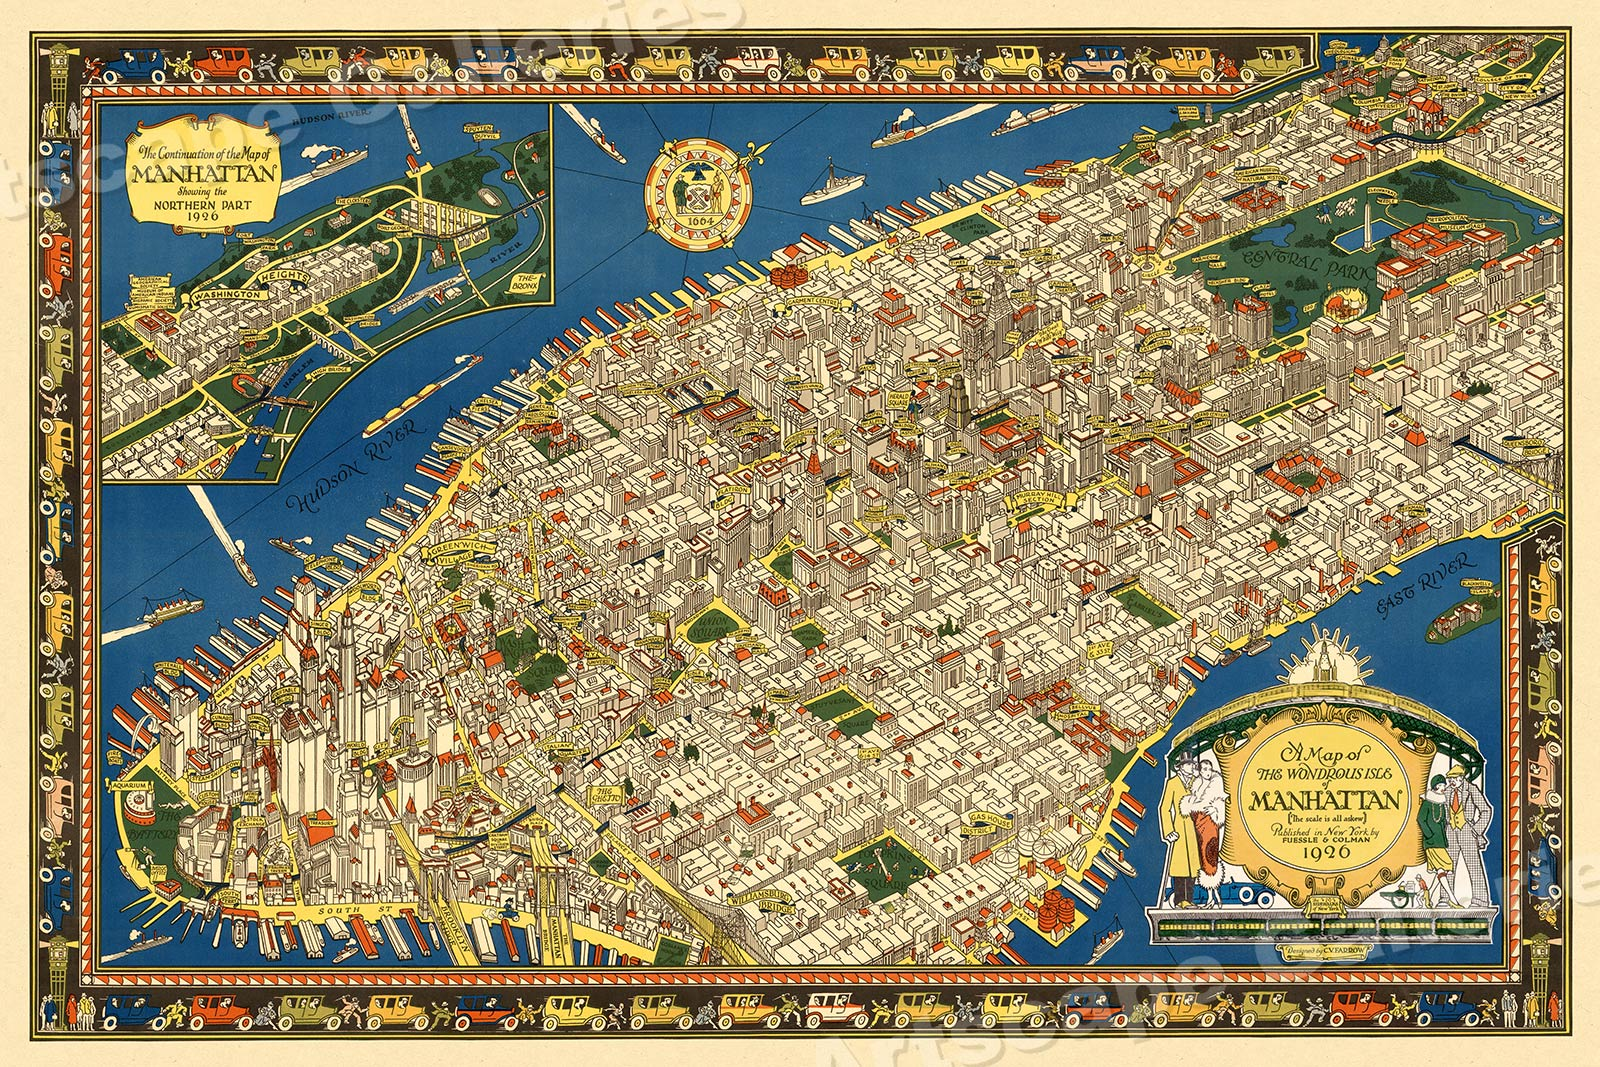 Details about Manhattan 1926 New York City Pictorial Map - 16x24 on new jersey, statue of liberty new york map, los angeles, empire state building, new york state map, new york, new york map, united states of america, charleston map, boston map, ny map, staten island map, madison square garden map, harlem map, east village new york map, statue of liberty, san francisco, times square map, central park map, world trade center, queens map, 5 burrows of new york map, manhattan map, times square, florida map, las vegas, los angeles map, long island map, brooklyn map, central park,